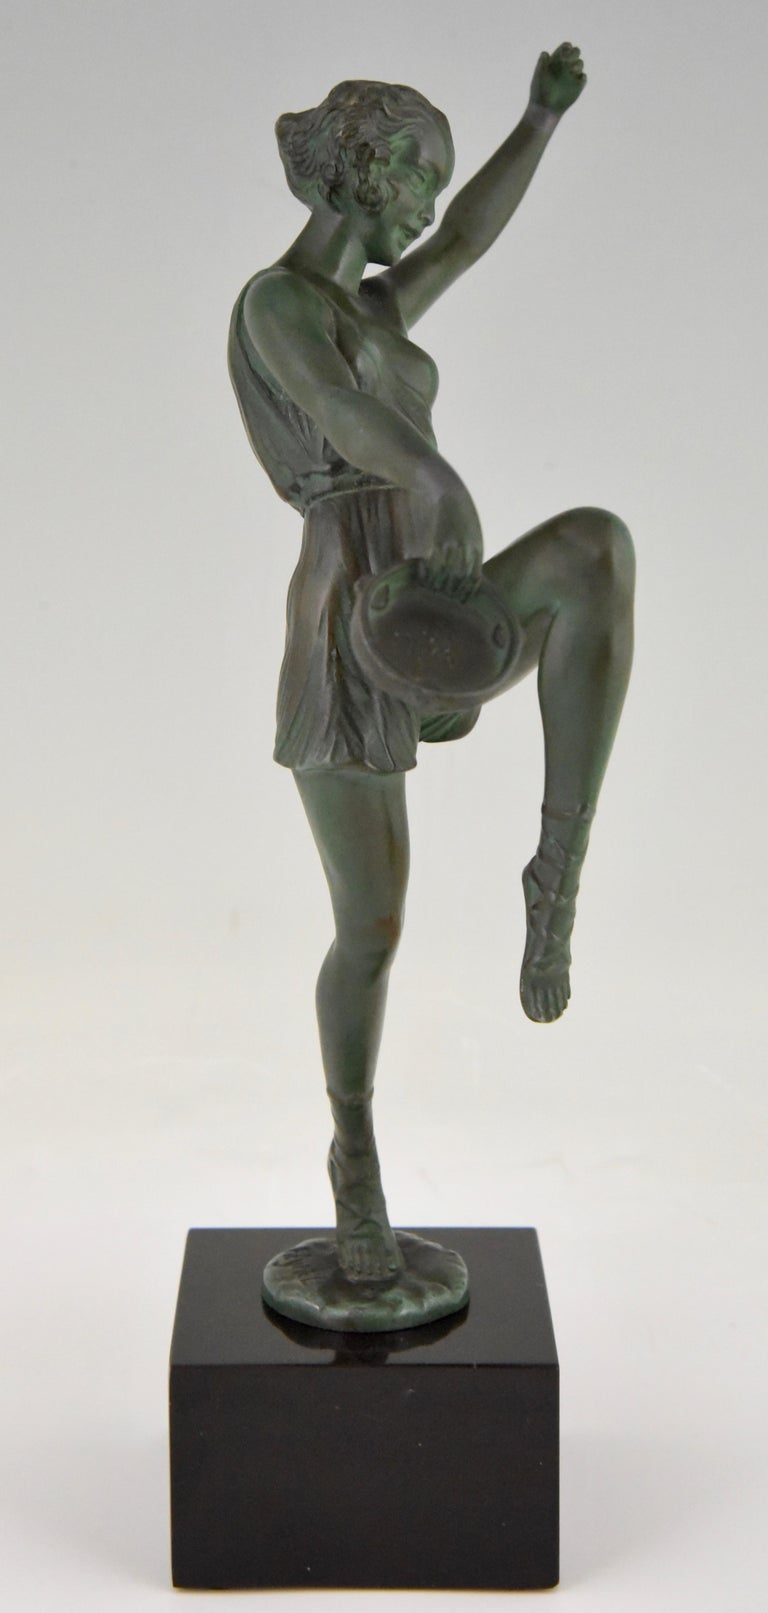 Art Deco Sculpture Dancer with Tambourine Fayral Pierre Le Faguays, France, 1930 For Sale 2